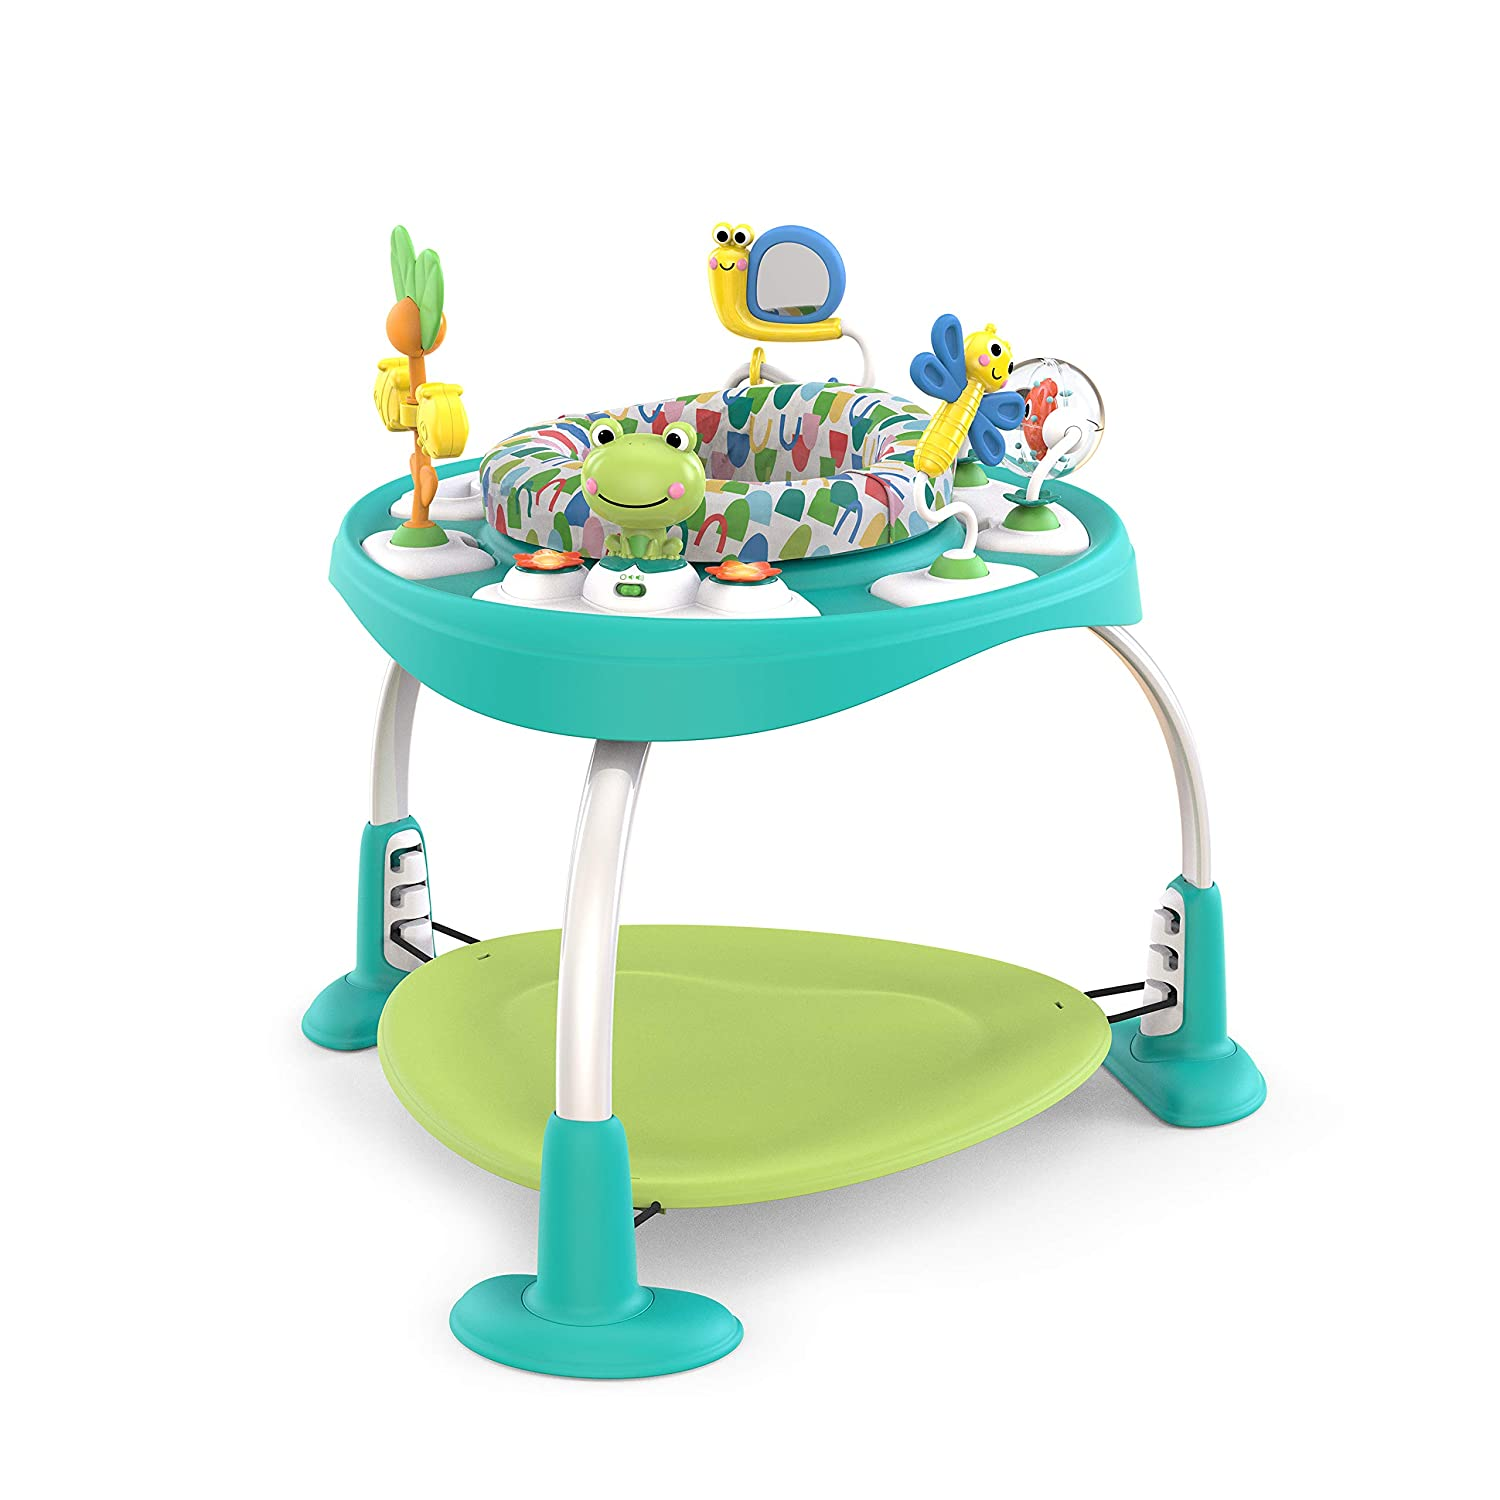 Bright Starts Bounce Baby 2-in-1 Activity Jumper  Table, Playfu